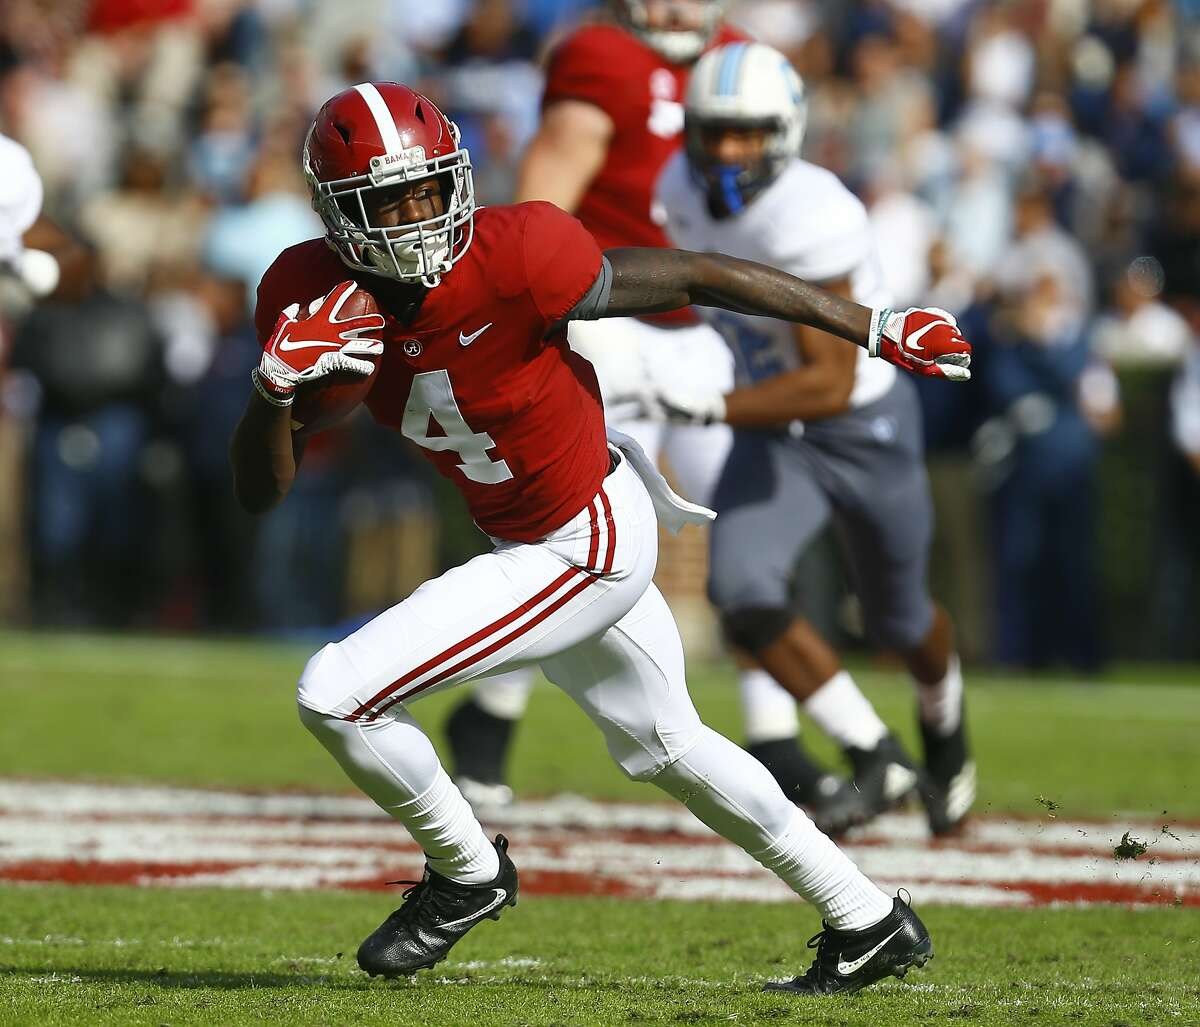 Alabama wide receiver Jerry Jeudy (4) catches a pass against Citadel during the first half of an NCAA college football game, Saturday, Nov. 17, 2018, in Tuscaloosa, Ala. (AP Photo/Butch Dill)